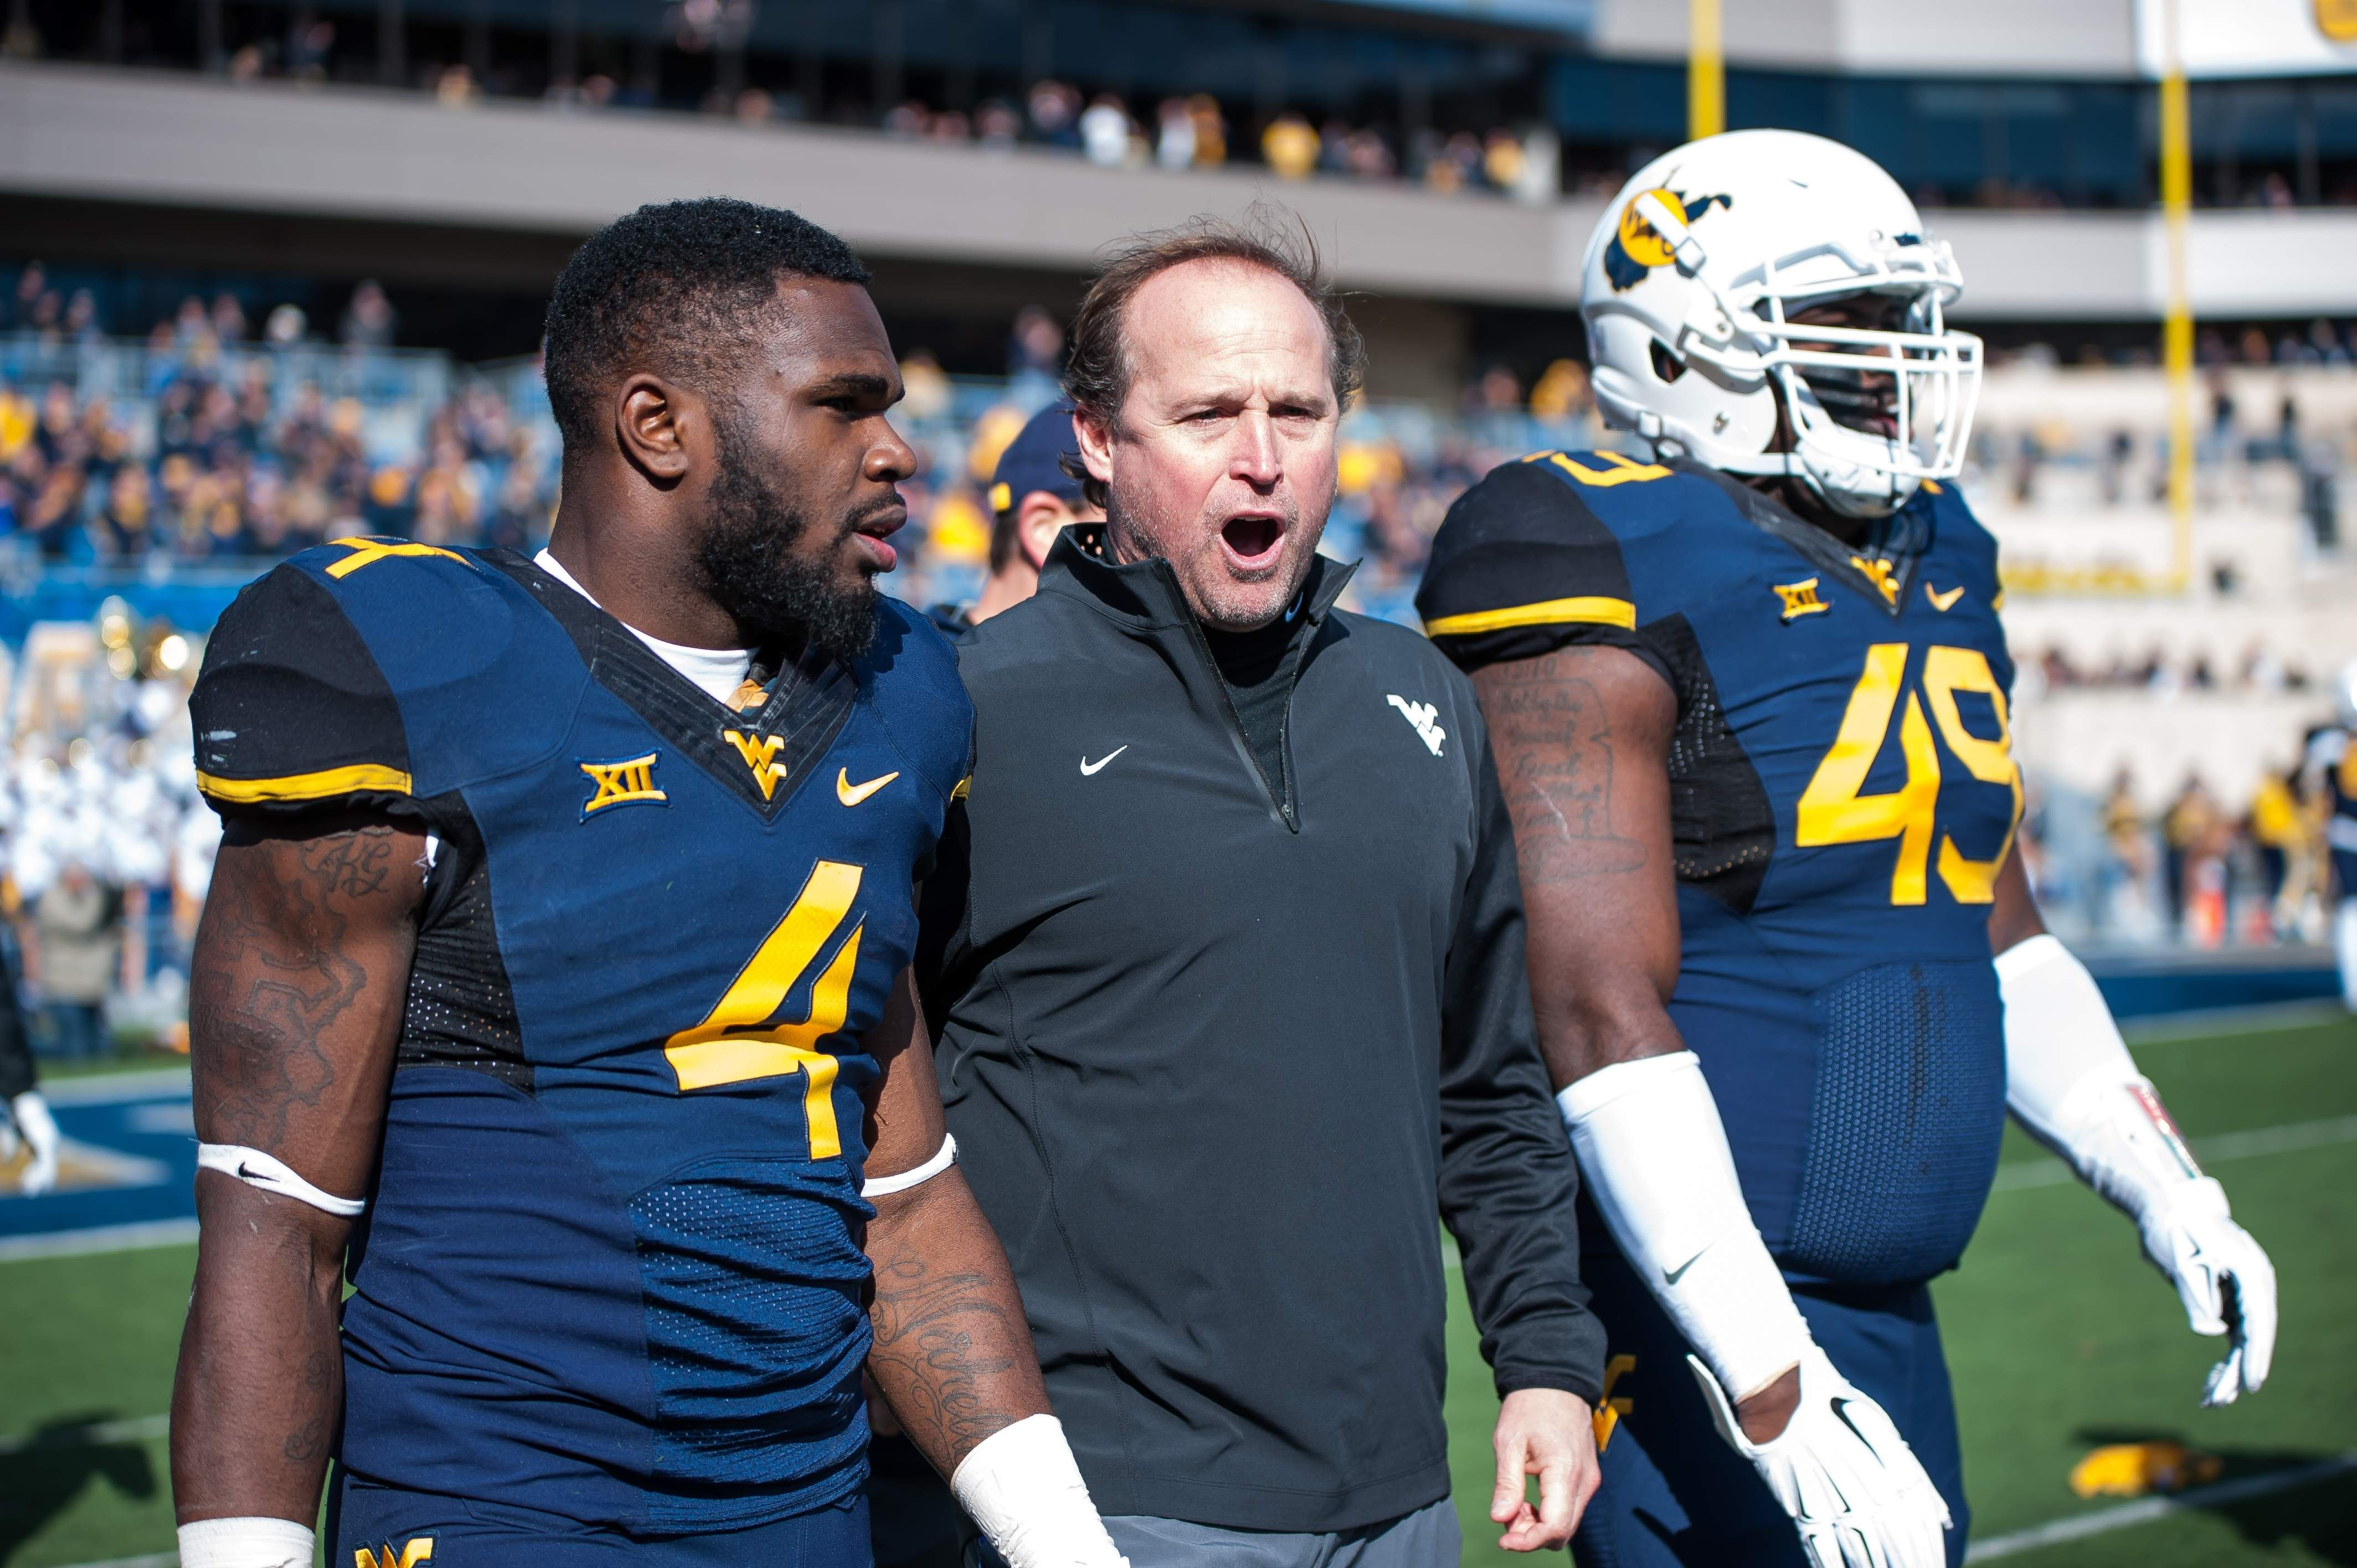 Charleston Gazette-Mail | Mitch Vingle: Holgorsen, special teams catch big wave in WVU win